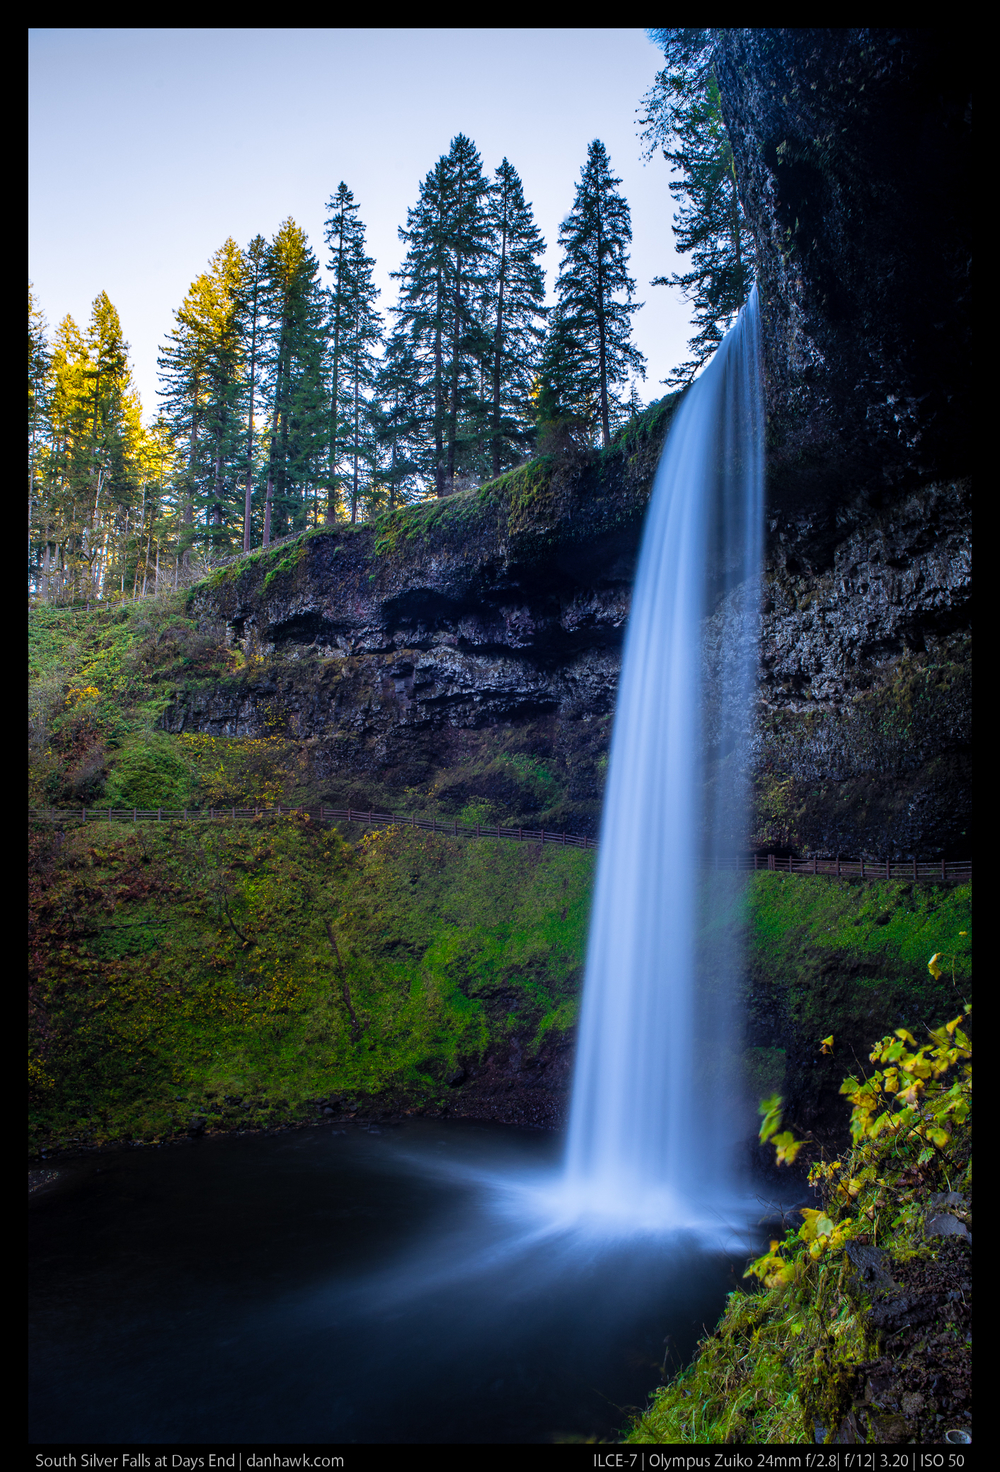 South Silver Falls at Days End